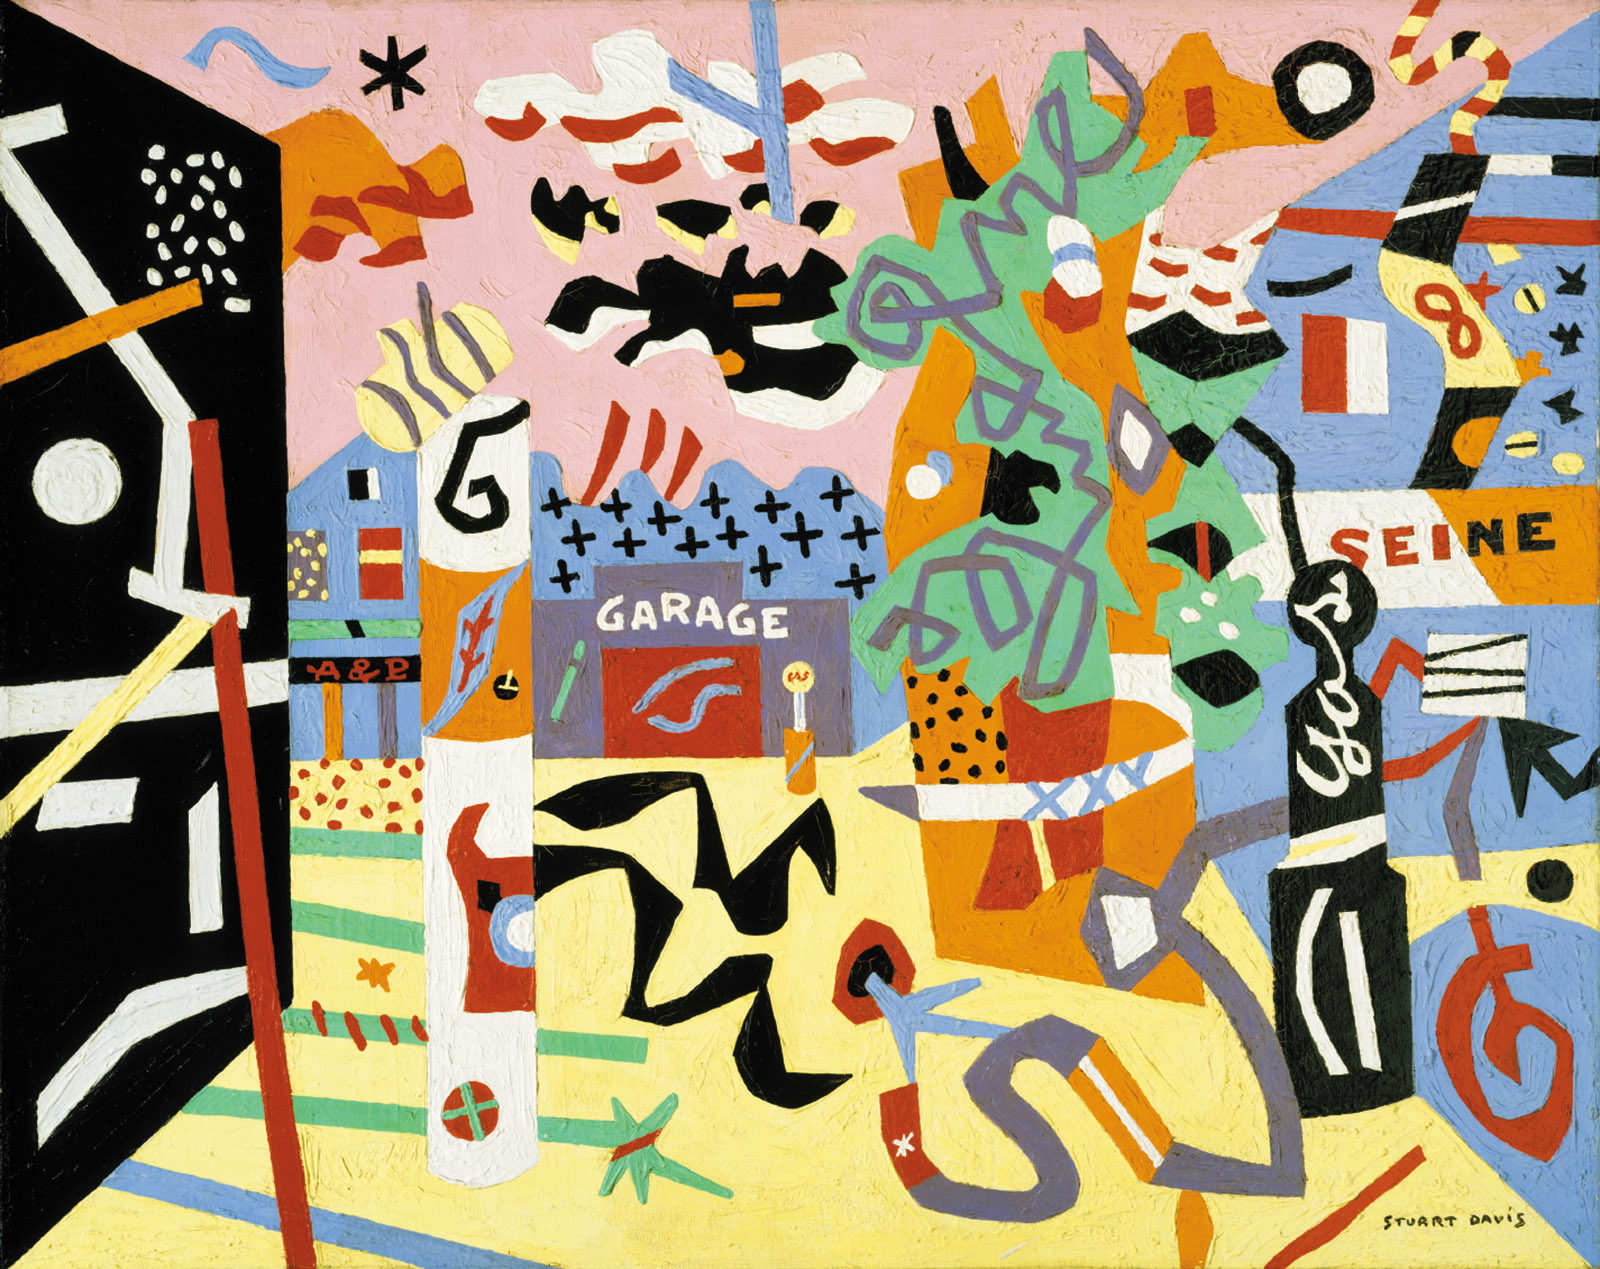 Stuart Davis: Report from Rockport, 24 x 30 inches, 1940